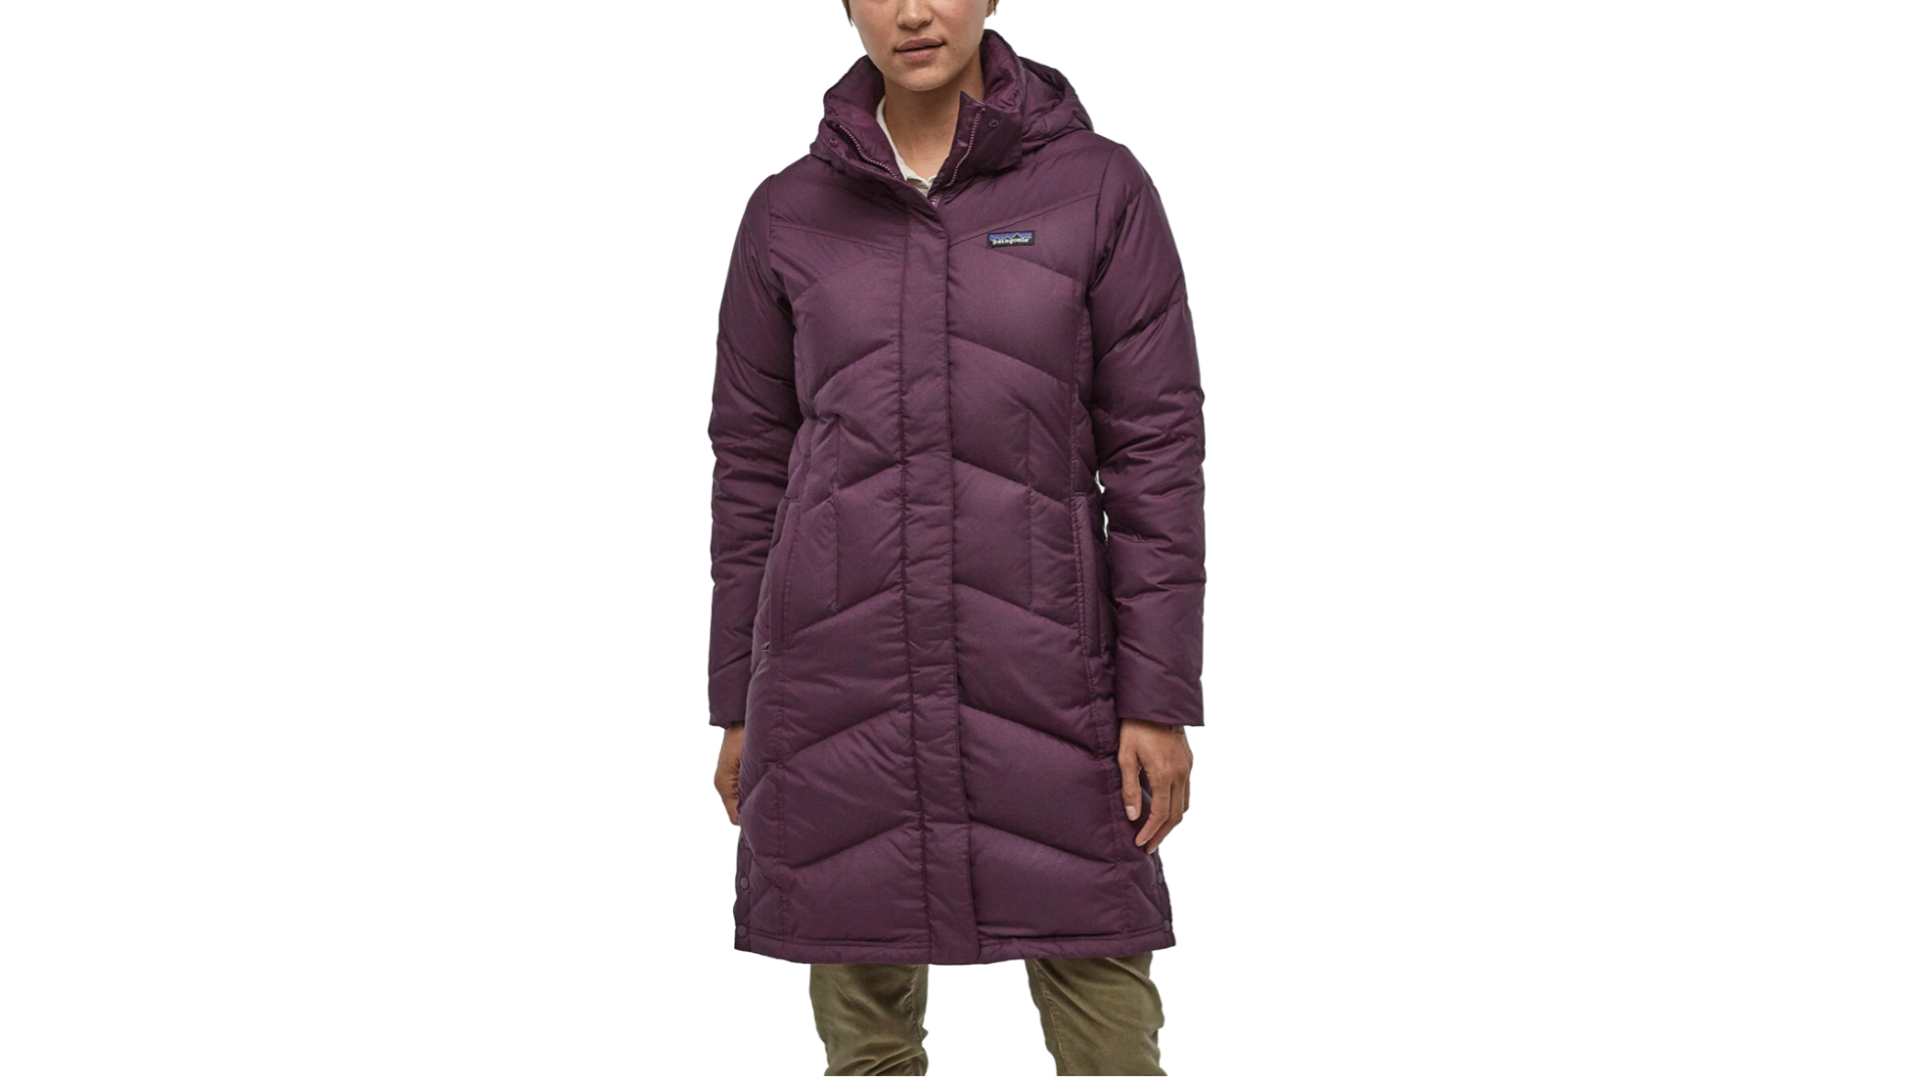 patagonia hooded down parka best women's winter coats for extreme cold